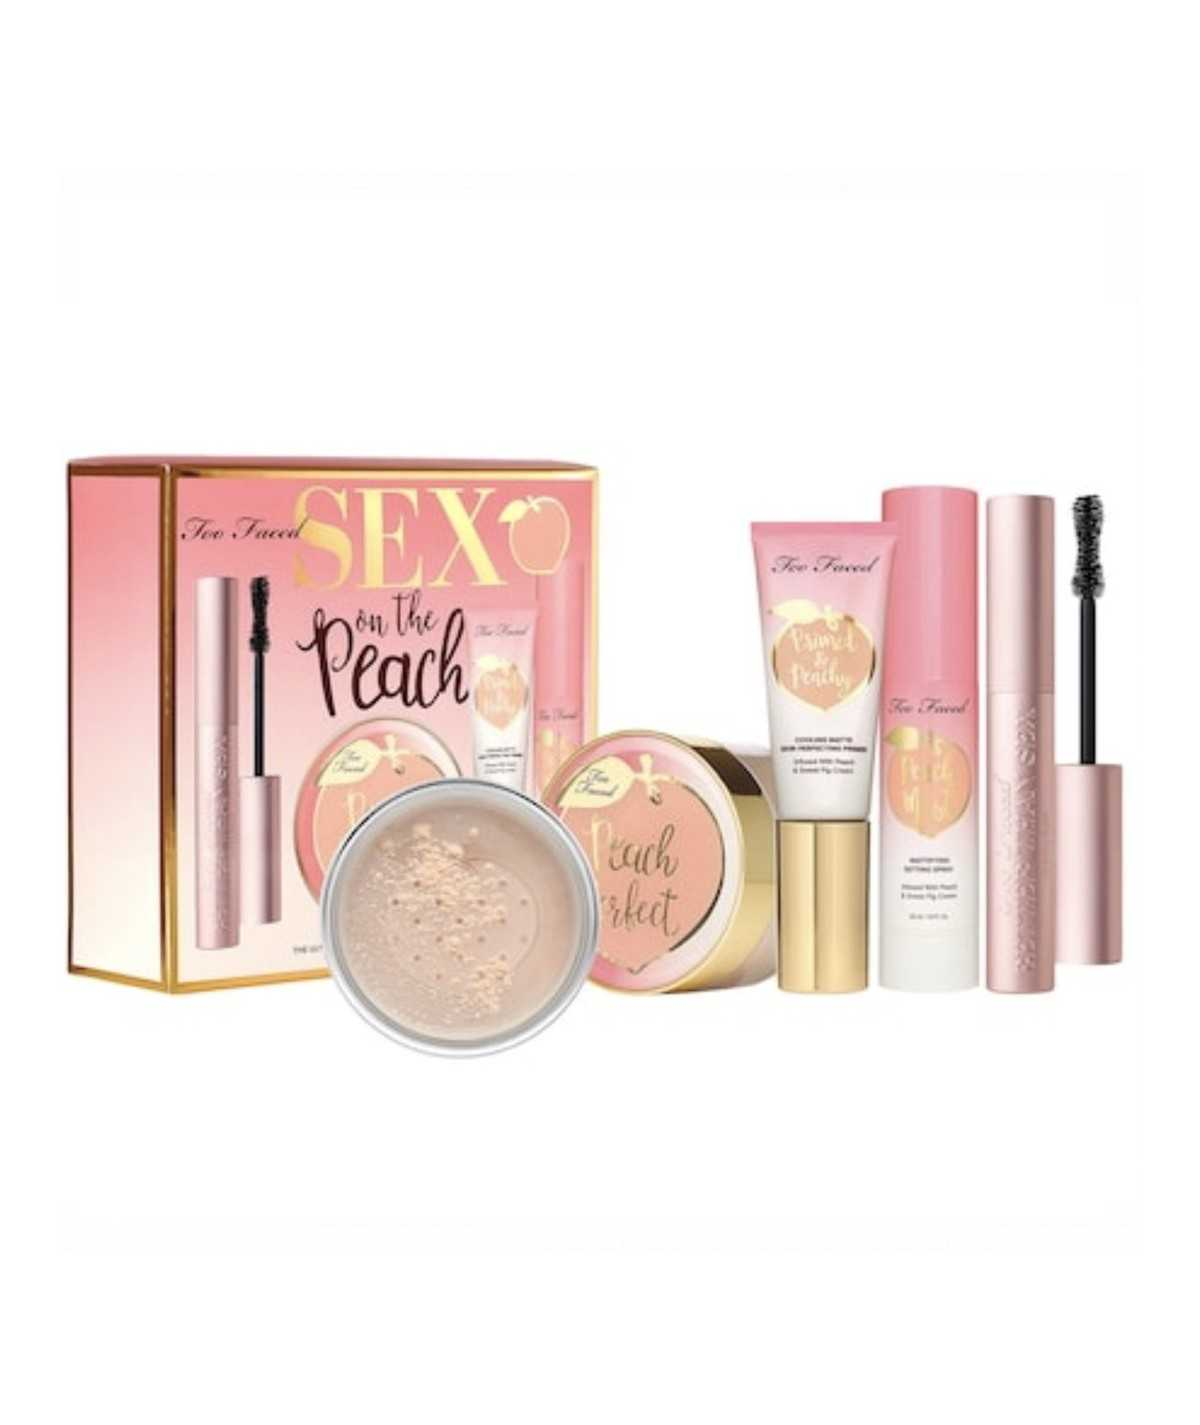 Too Faced S*x On The Peach Complexion Set